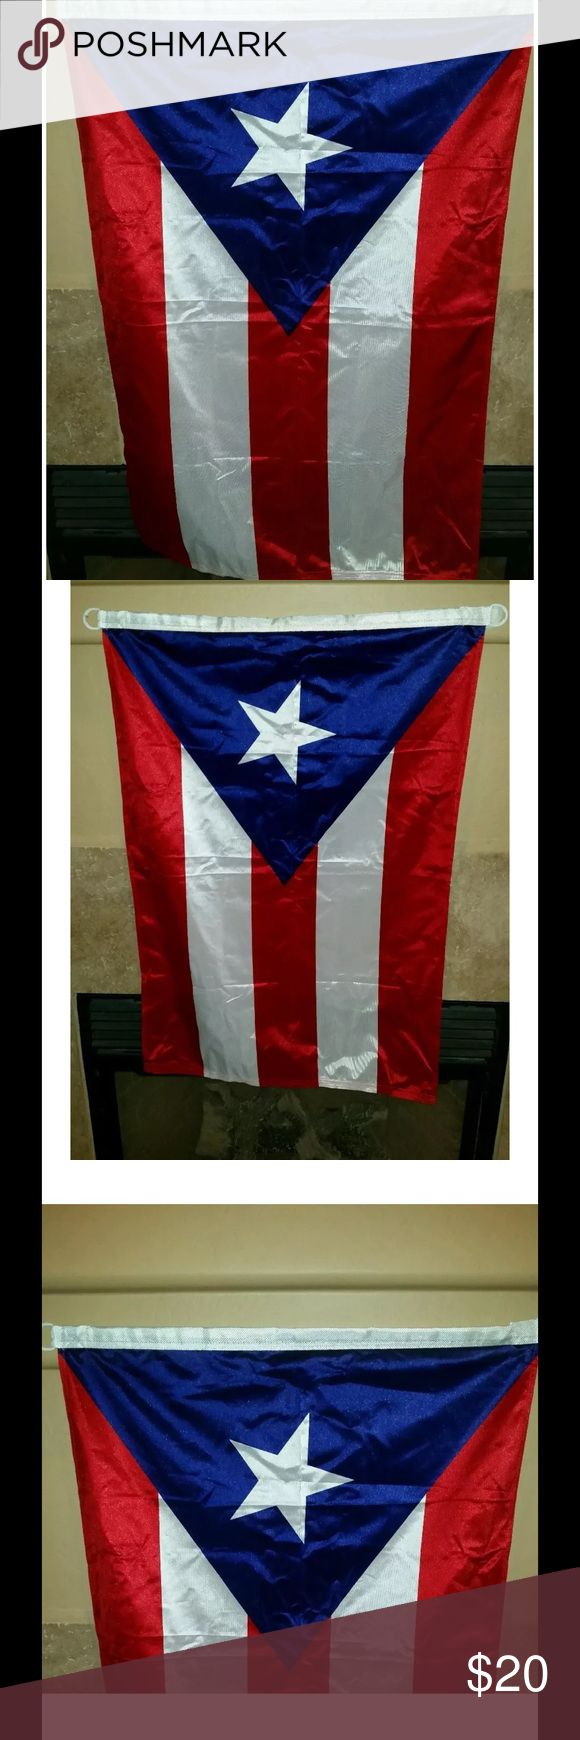 """Flag of Puerto Rico 34"""" X 23"""" for sale is a flag for the country Puerto Rico. Flag is in excellent condition with no rips or stains. This is made by the Alamo Flag Company. Has two plastic rings on the end of the flag so you can hang it without putting a thumbtack, nail, anything through the actual flag.   The measurements of the flag is 34 x 23   If you have any questions or would like additional photos please feel free to ask. Please view my other listings, Alamo flag company Other"""